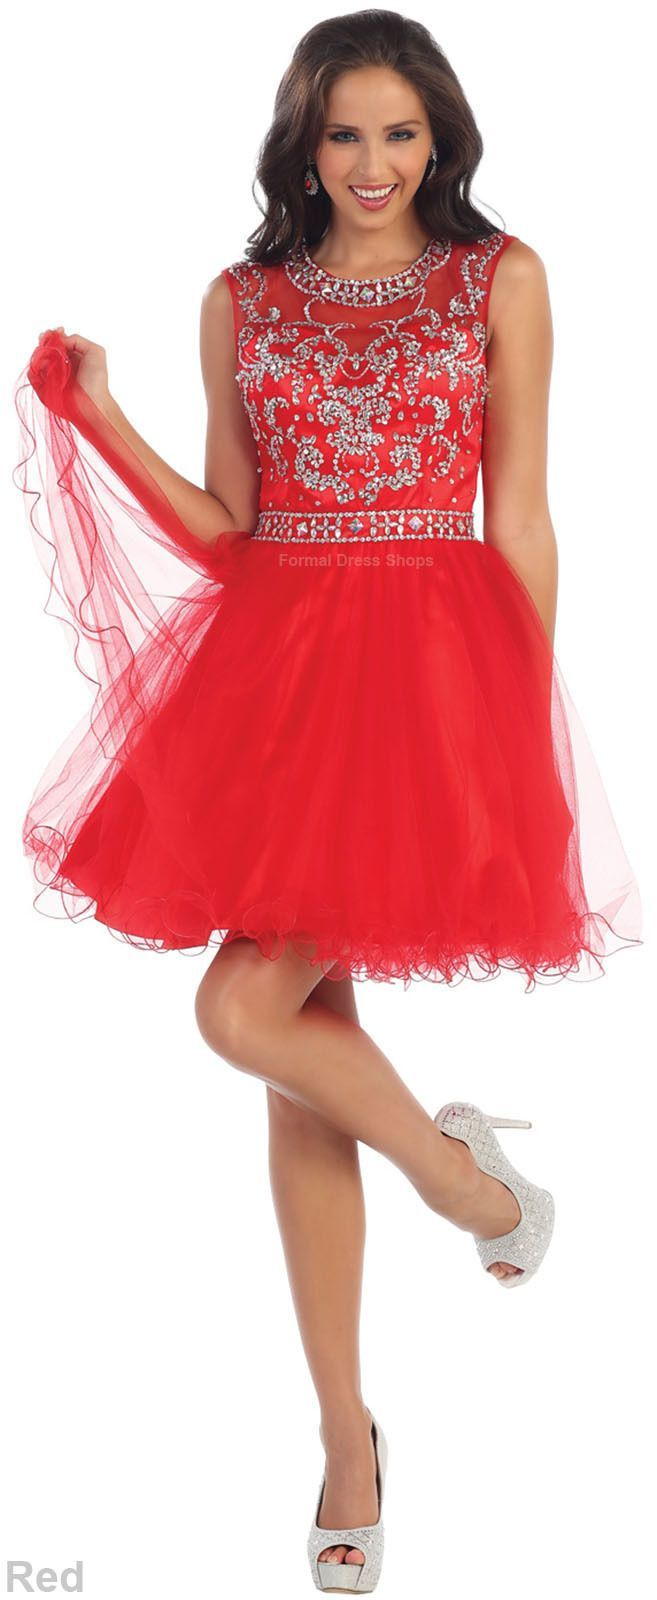 Cocktail short prom dress sweet party homecoming bridesmaid semi